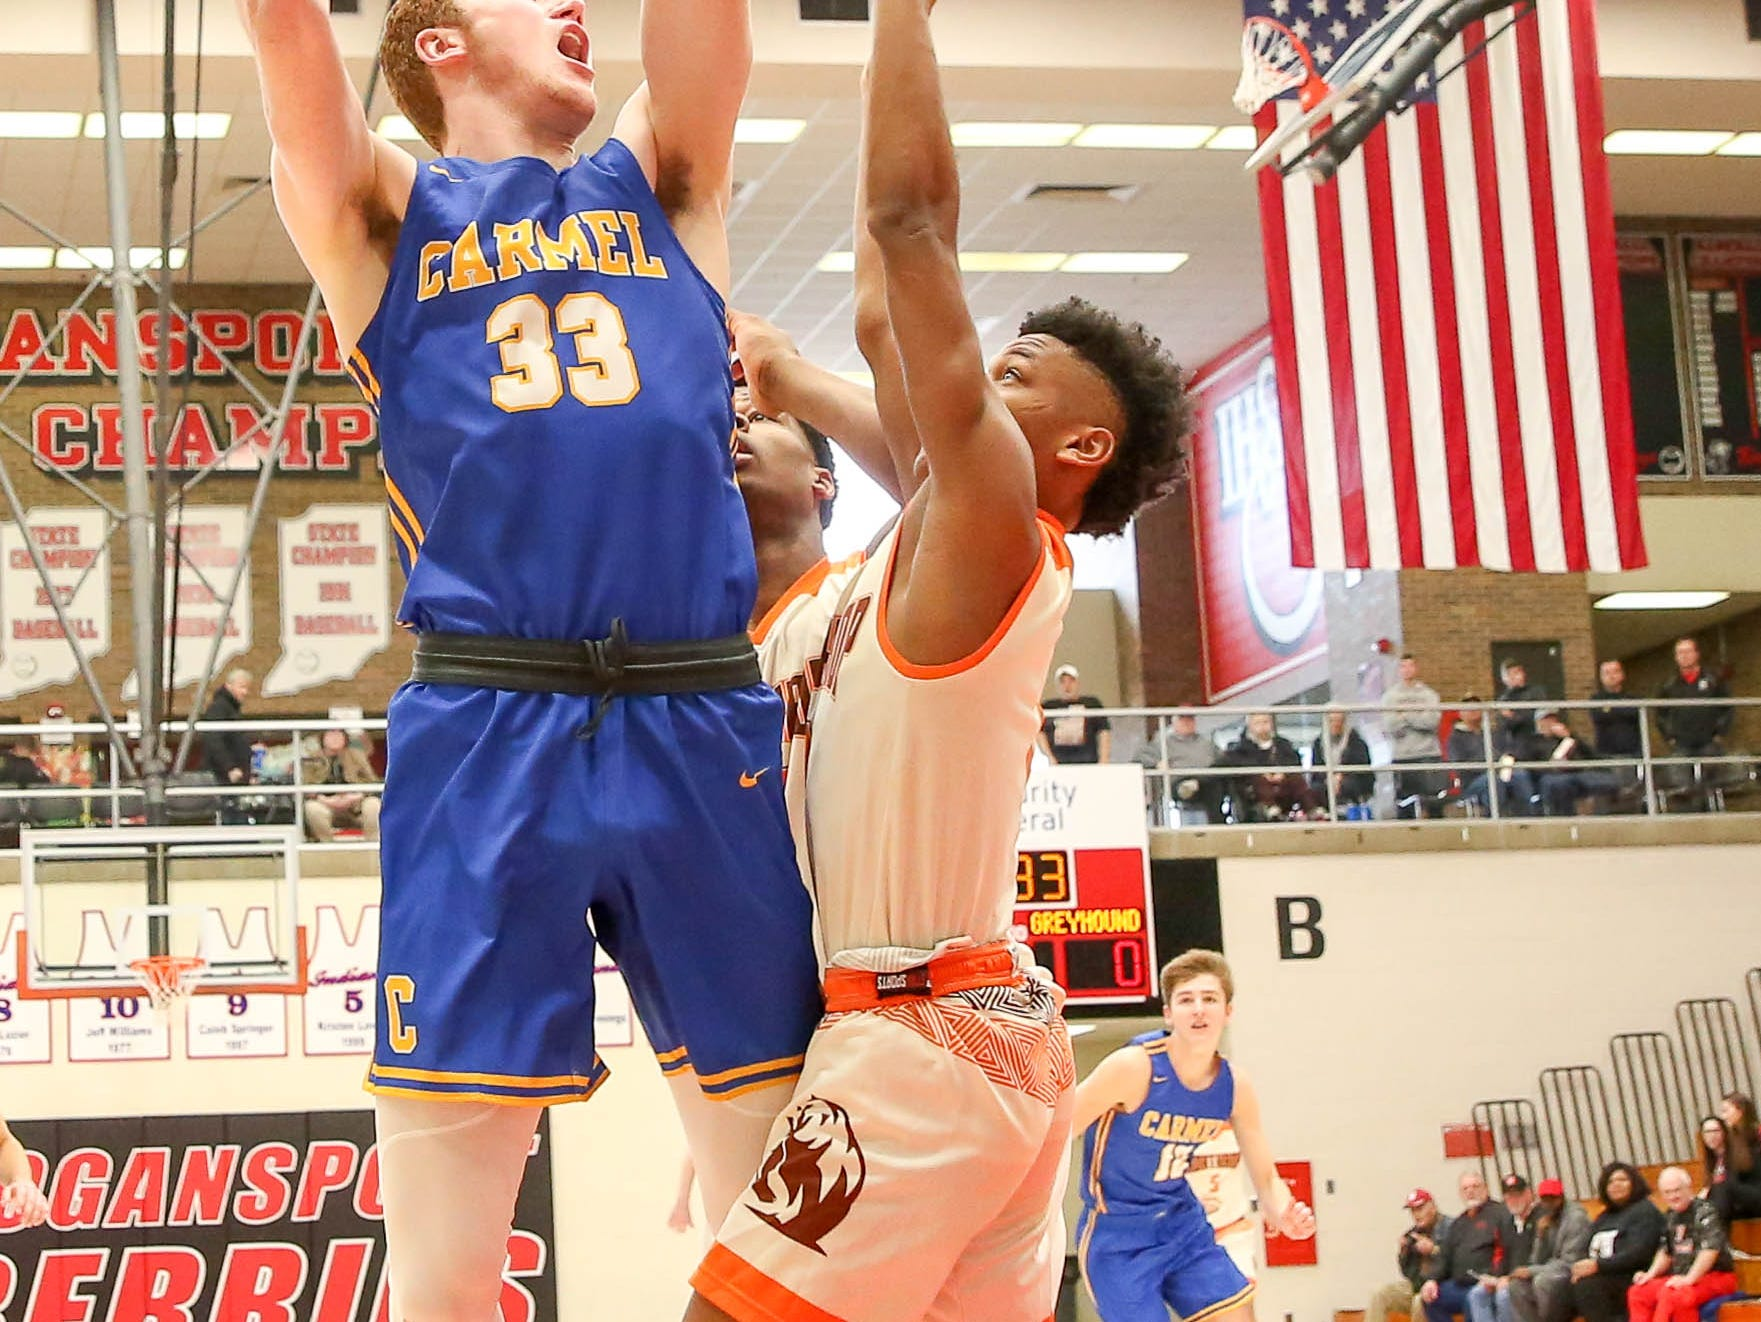 Carmel's John Michael Mulloy (33)takes to the air for a shot during the first half of Carmel vs. Fort Wayne Northrop High School in the IHSAA Varsity Boys Regional Semifinals held at Logansport High School, March 9, 2019.